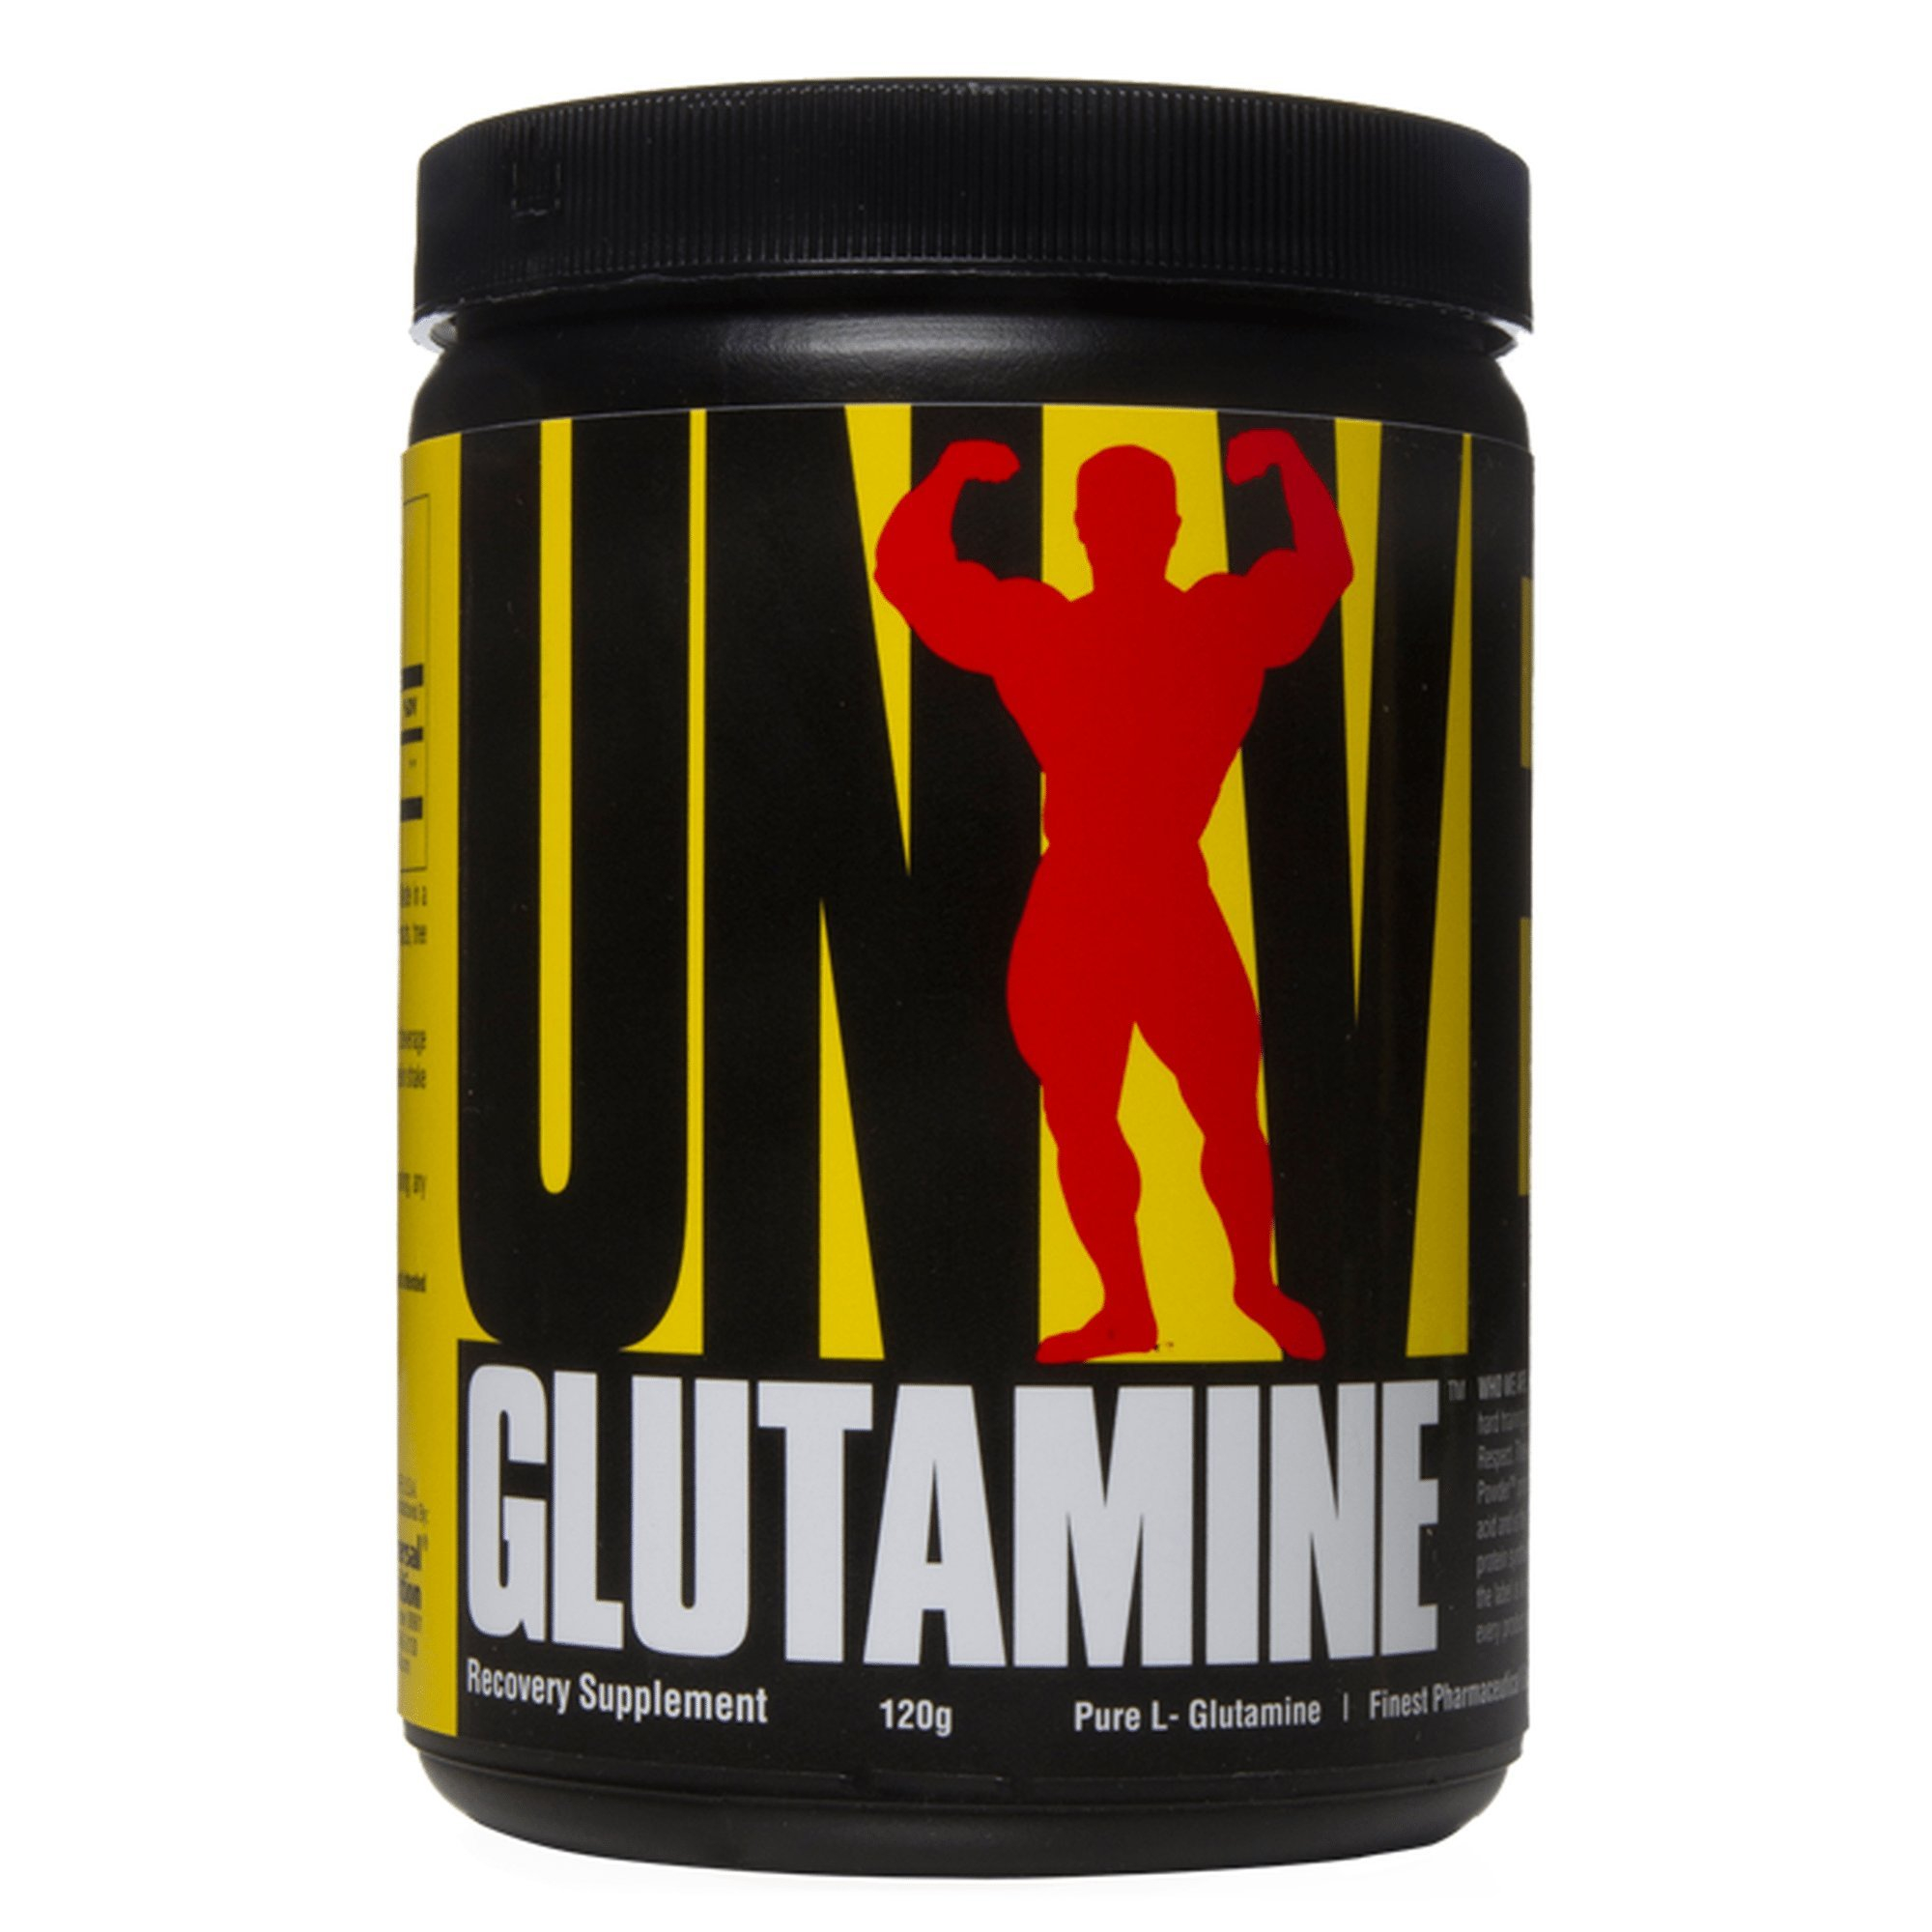 Universal Nutrition Glutamine Powder Supplement - Pure L-Glutamine - Muscle Recovery BCAA - Full 5g of Glutamine per Serving - Pharmaceutical Grade Amino Acid - 120 g by Universal Nutrition